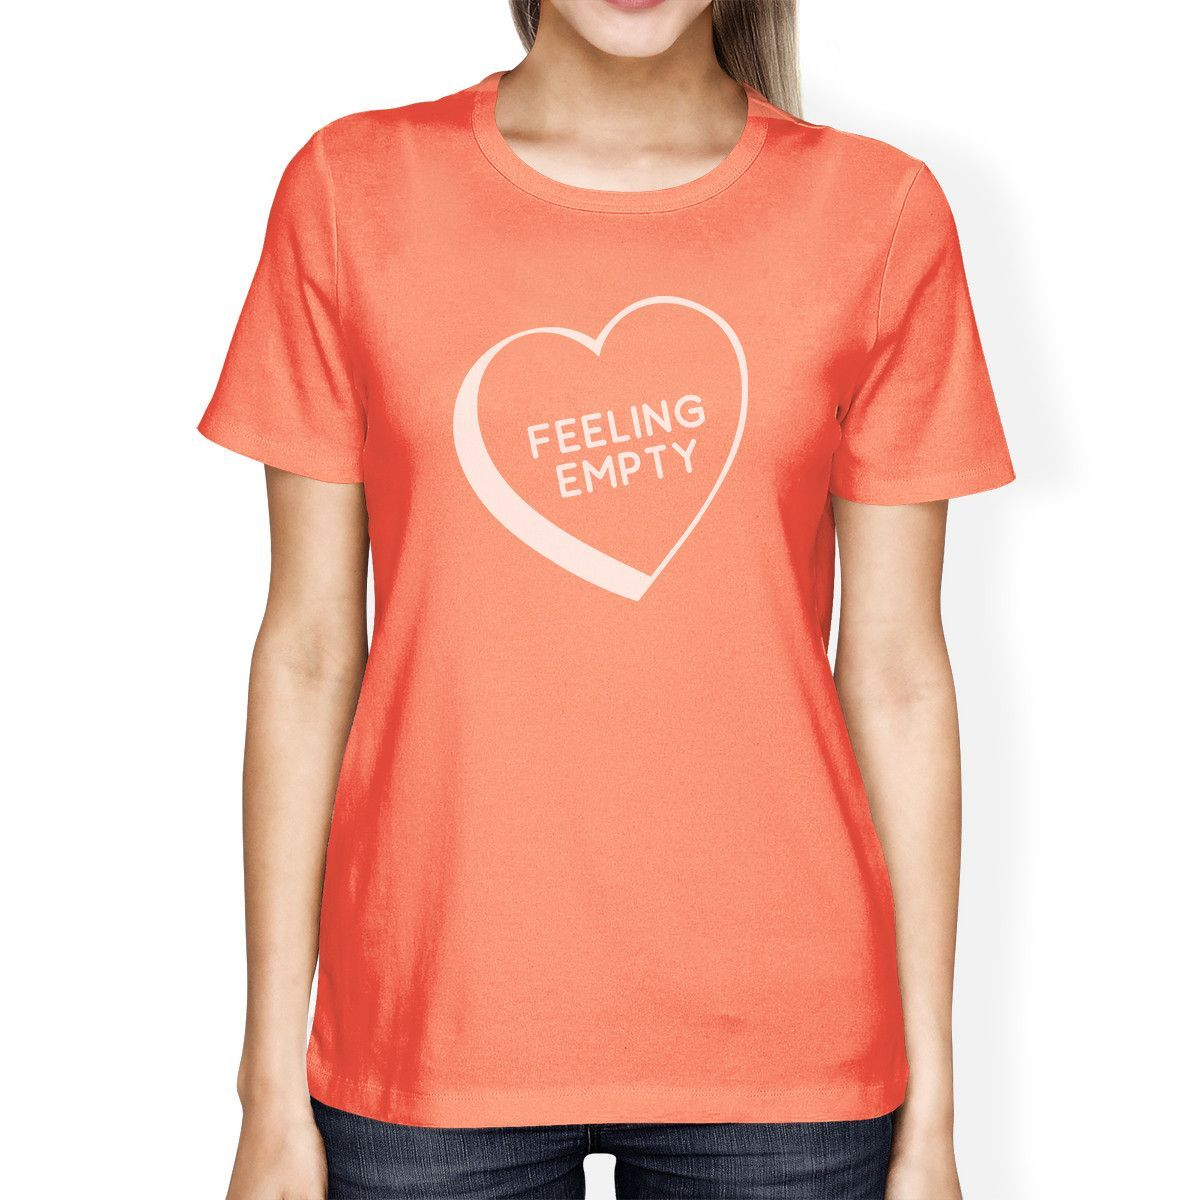 Funny Presents For Her Part - 41: Feeling Empty Heart Peach Round Neck Shirt Funny Gifts For Her